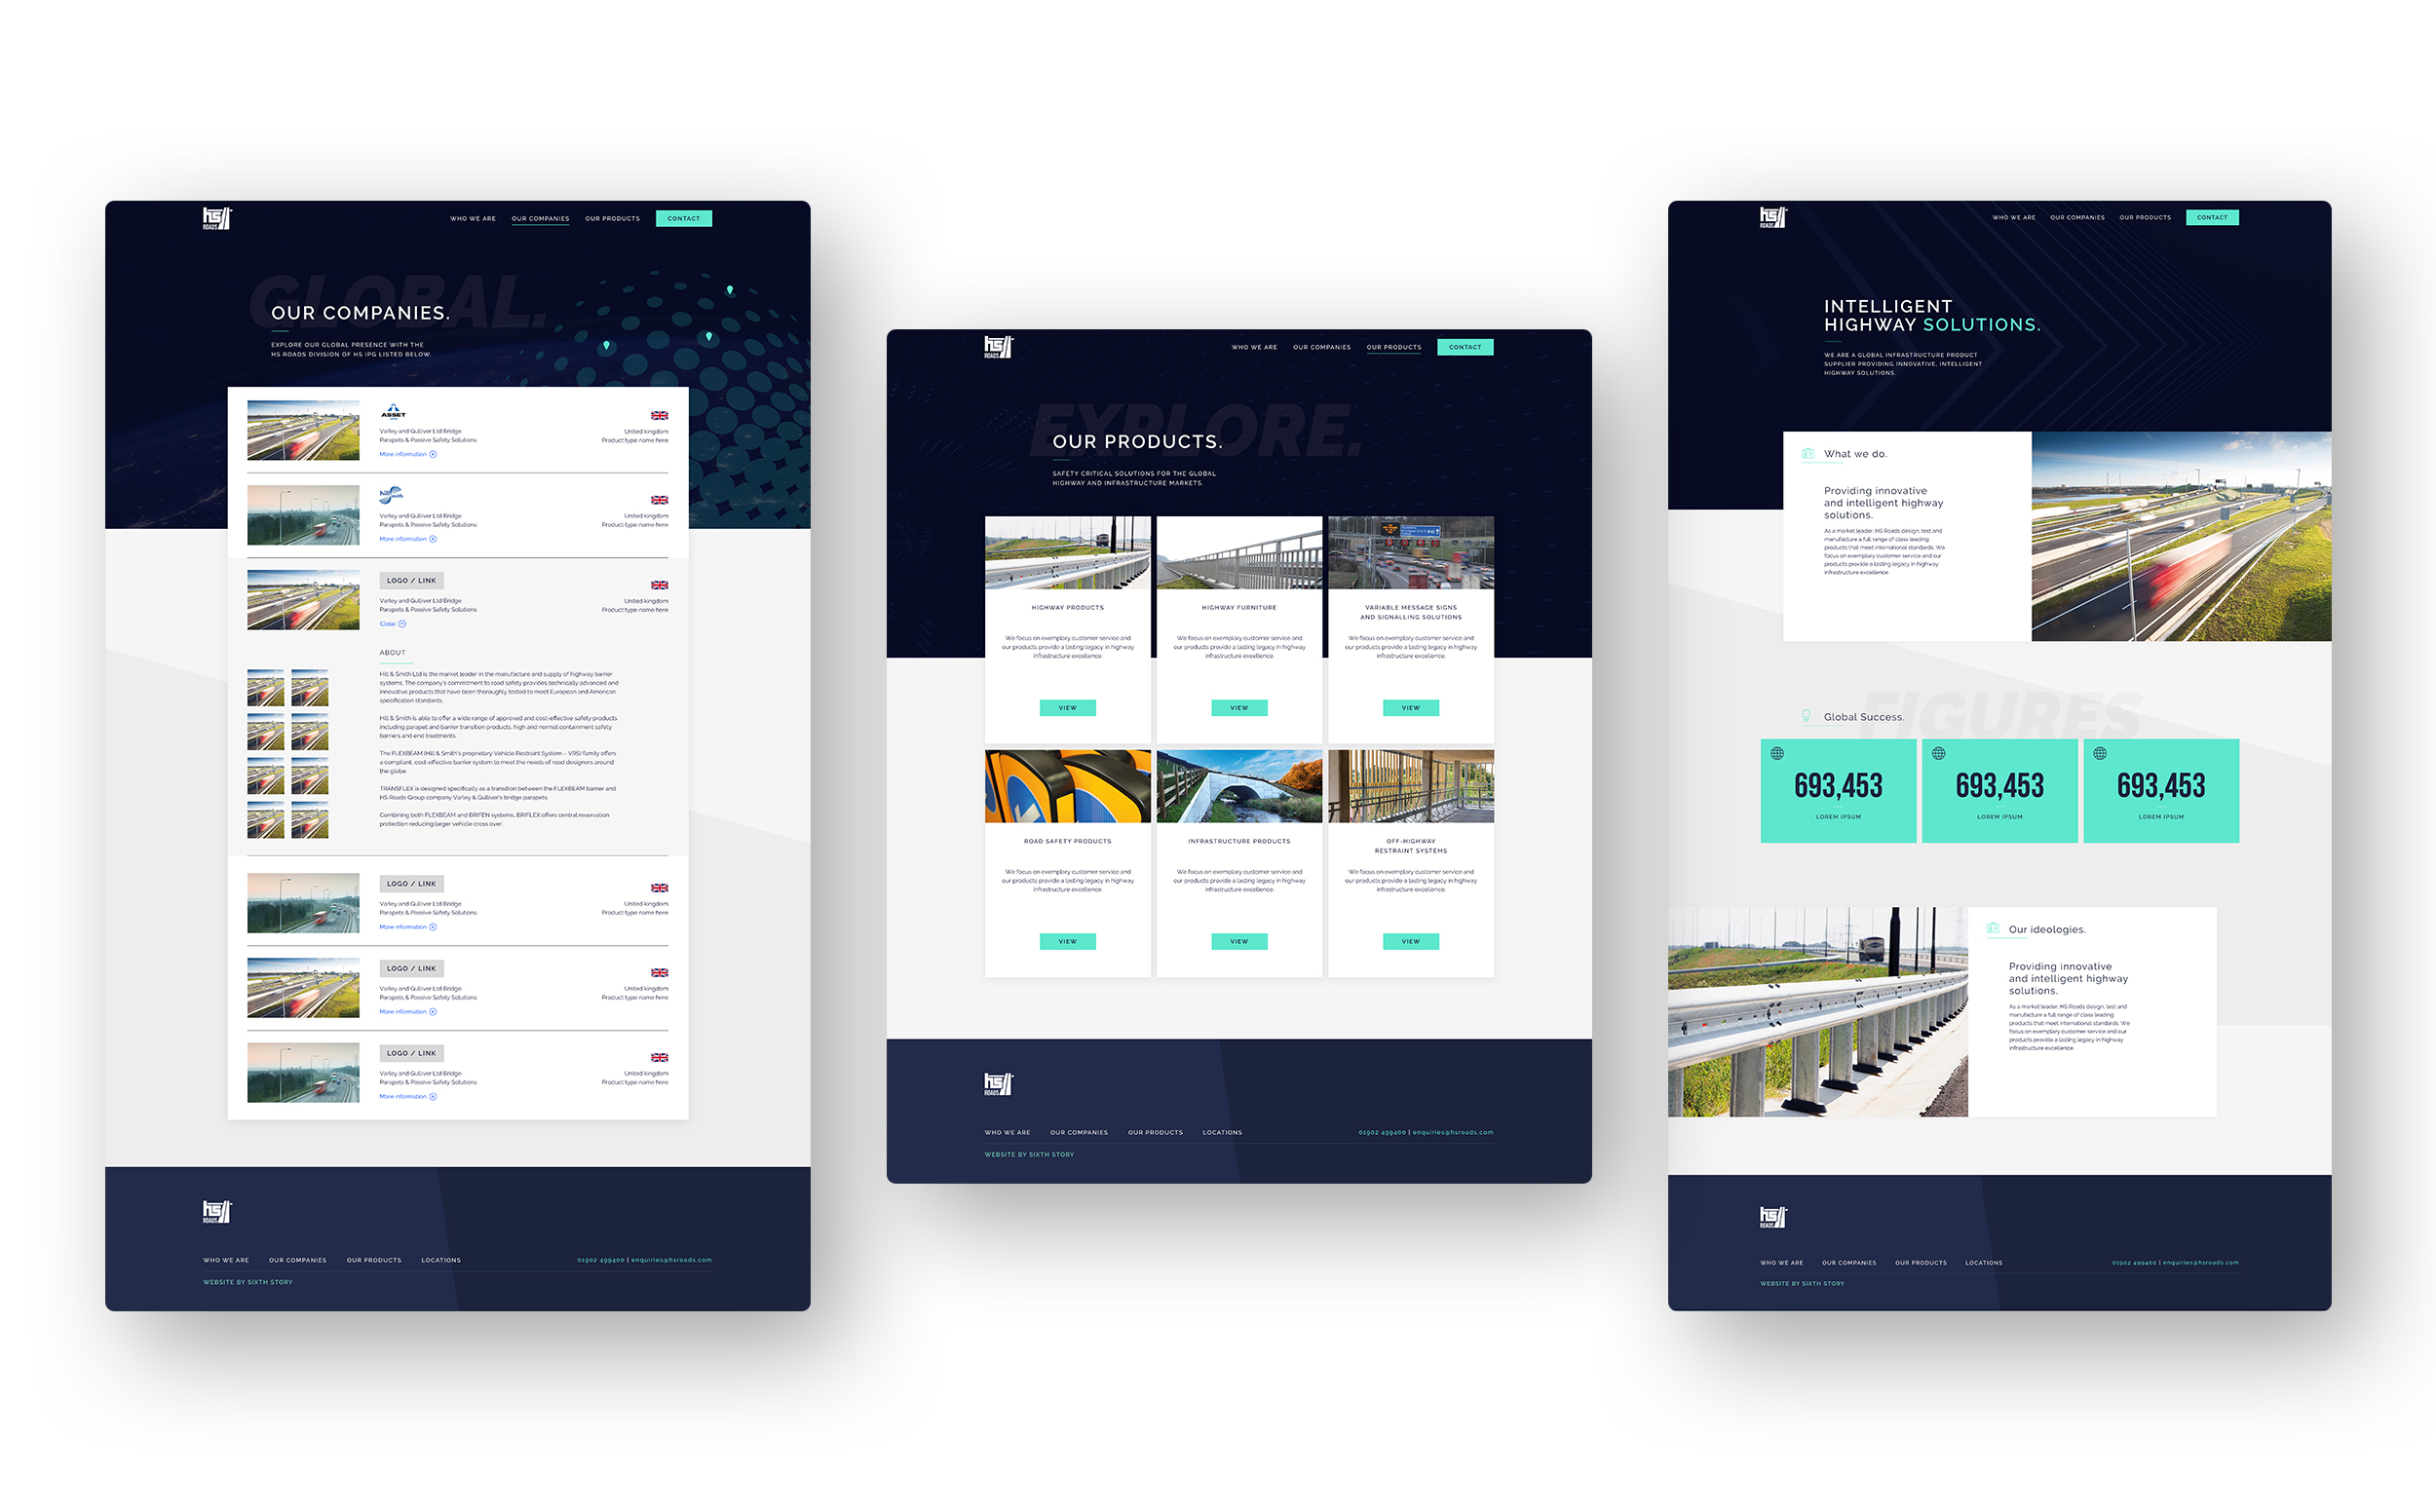 Mockups of the HS Roads Website.